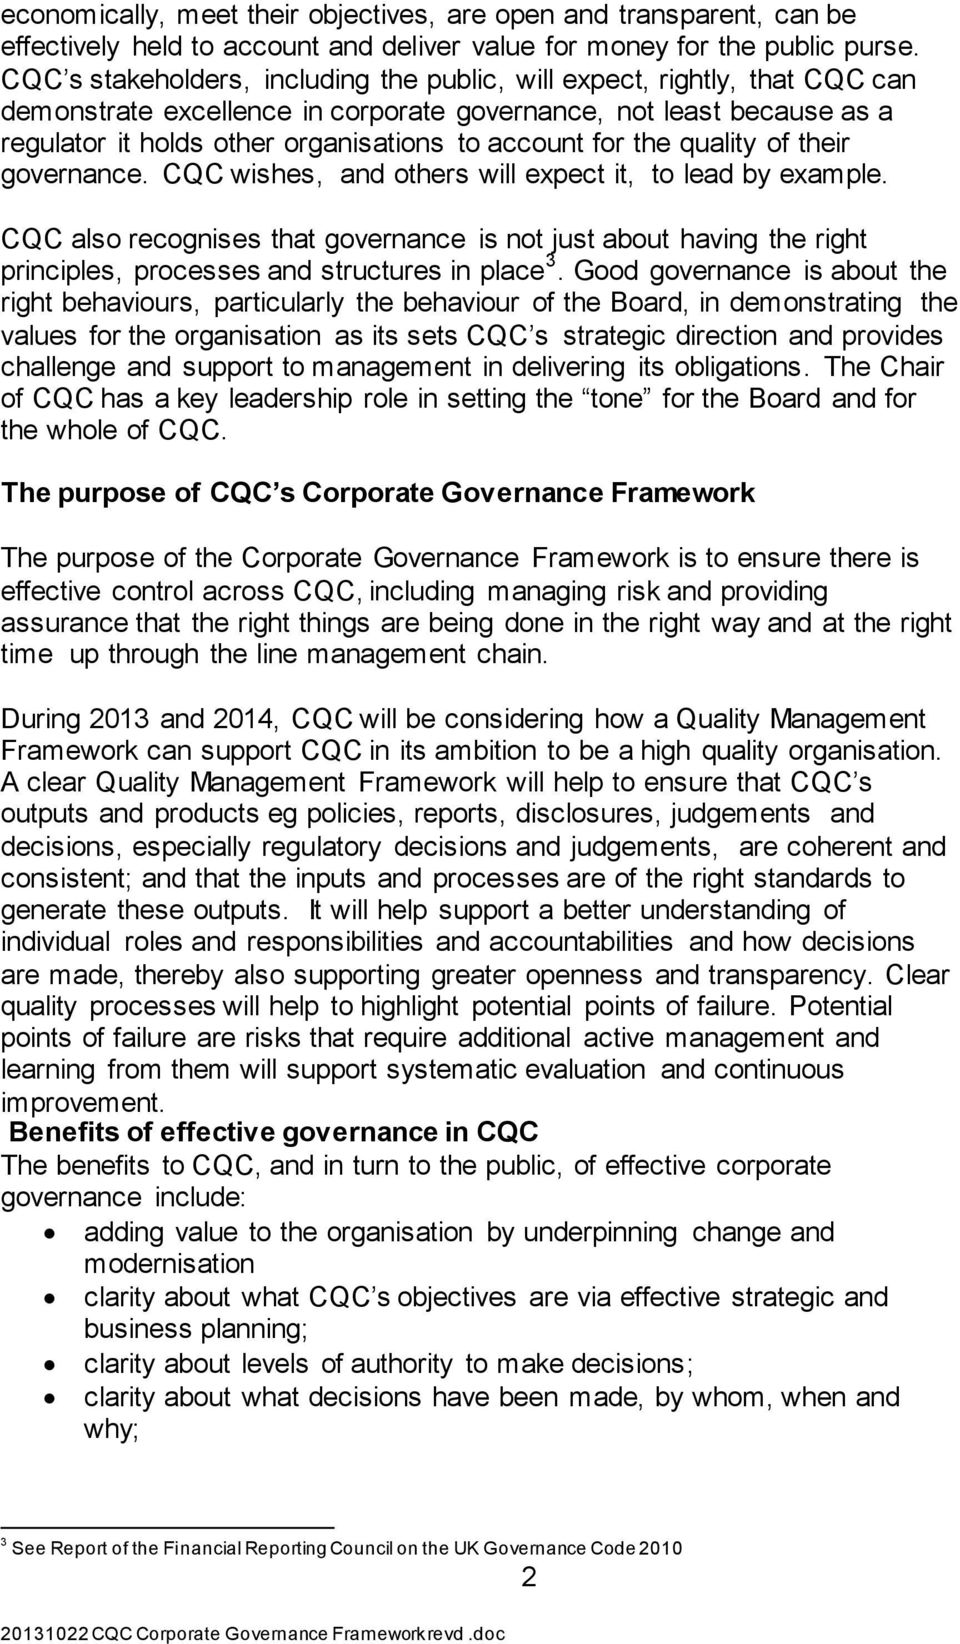 for the quality of their governance. CQC wishes, and others will expect it, to lead by example.